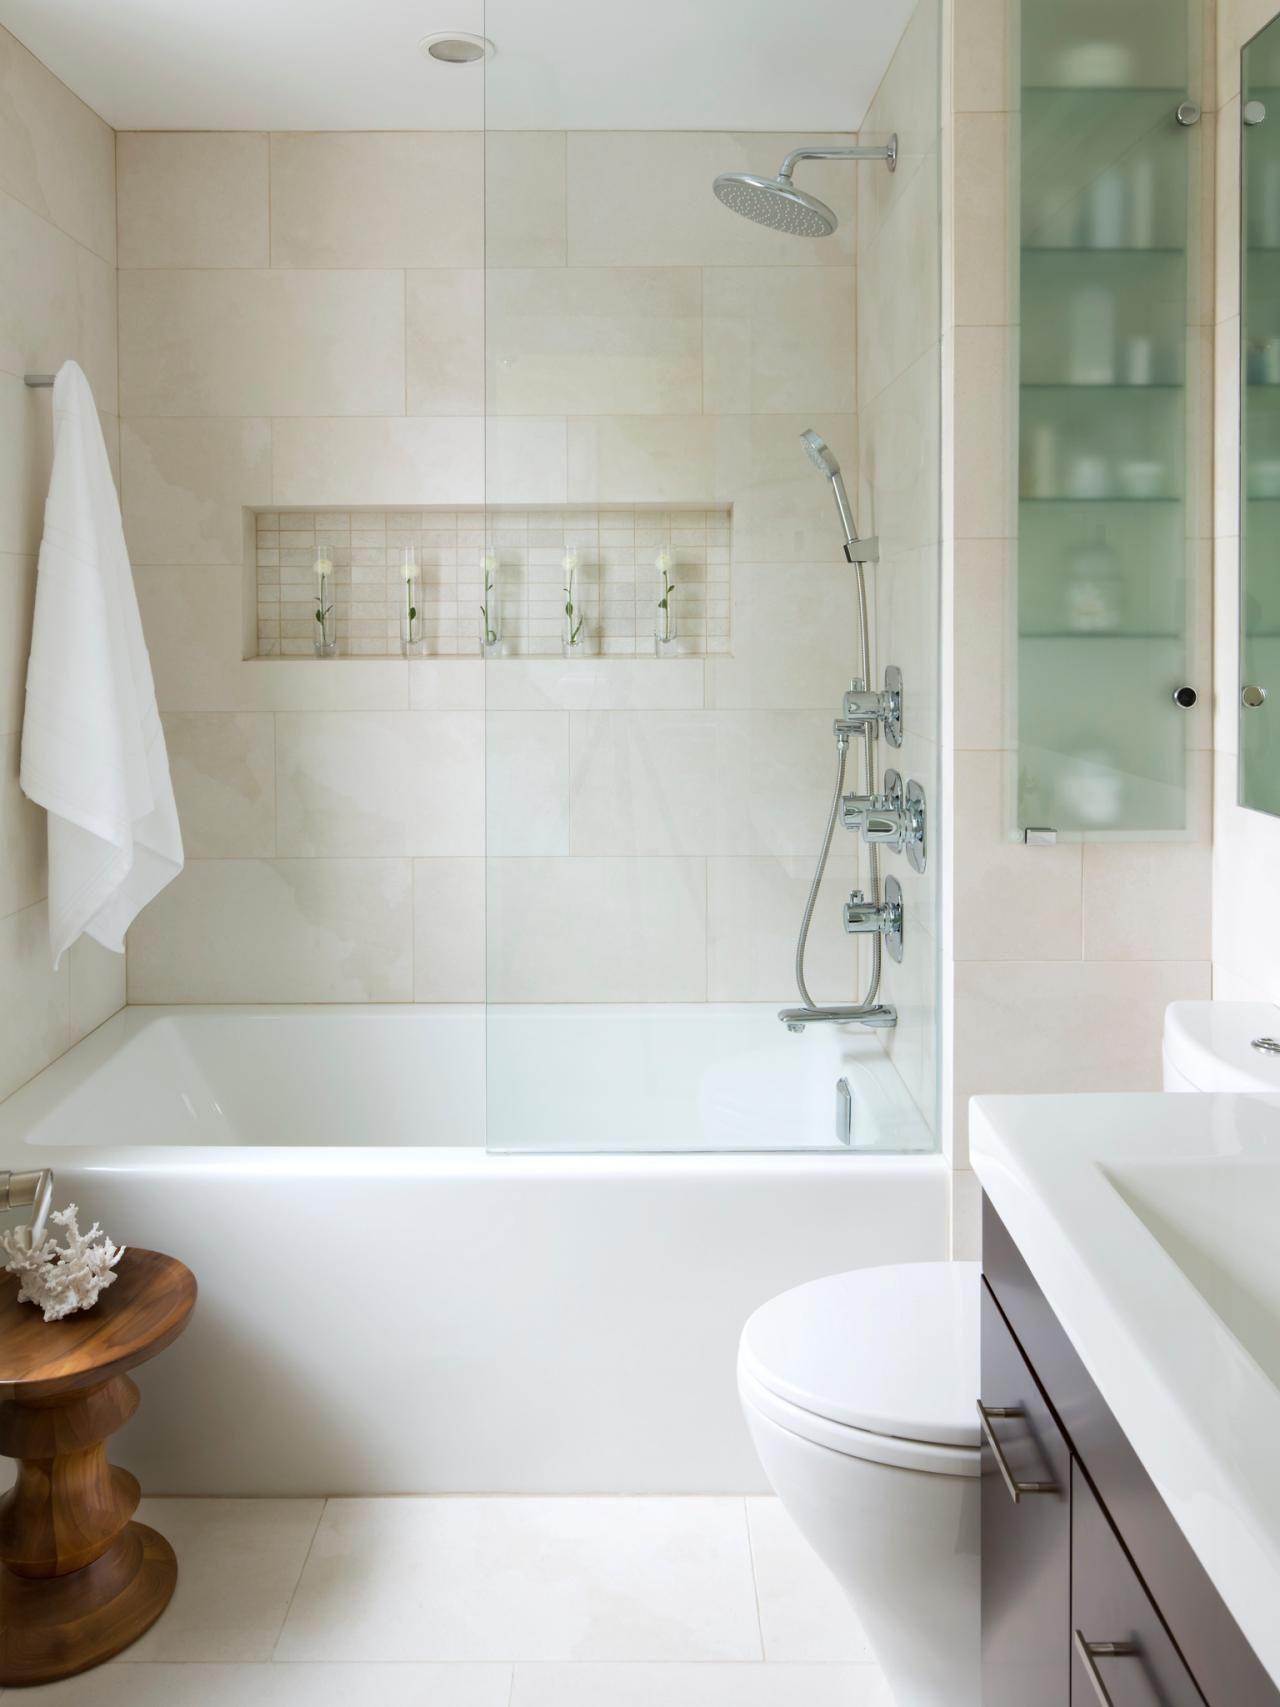 Best Bathtubs for Small Bathrooms - Neutral Interior Paint Colors ...